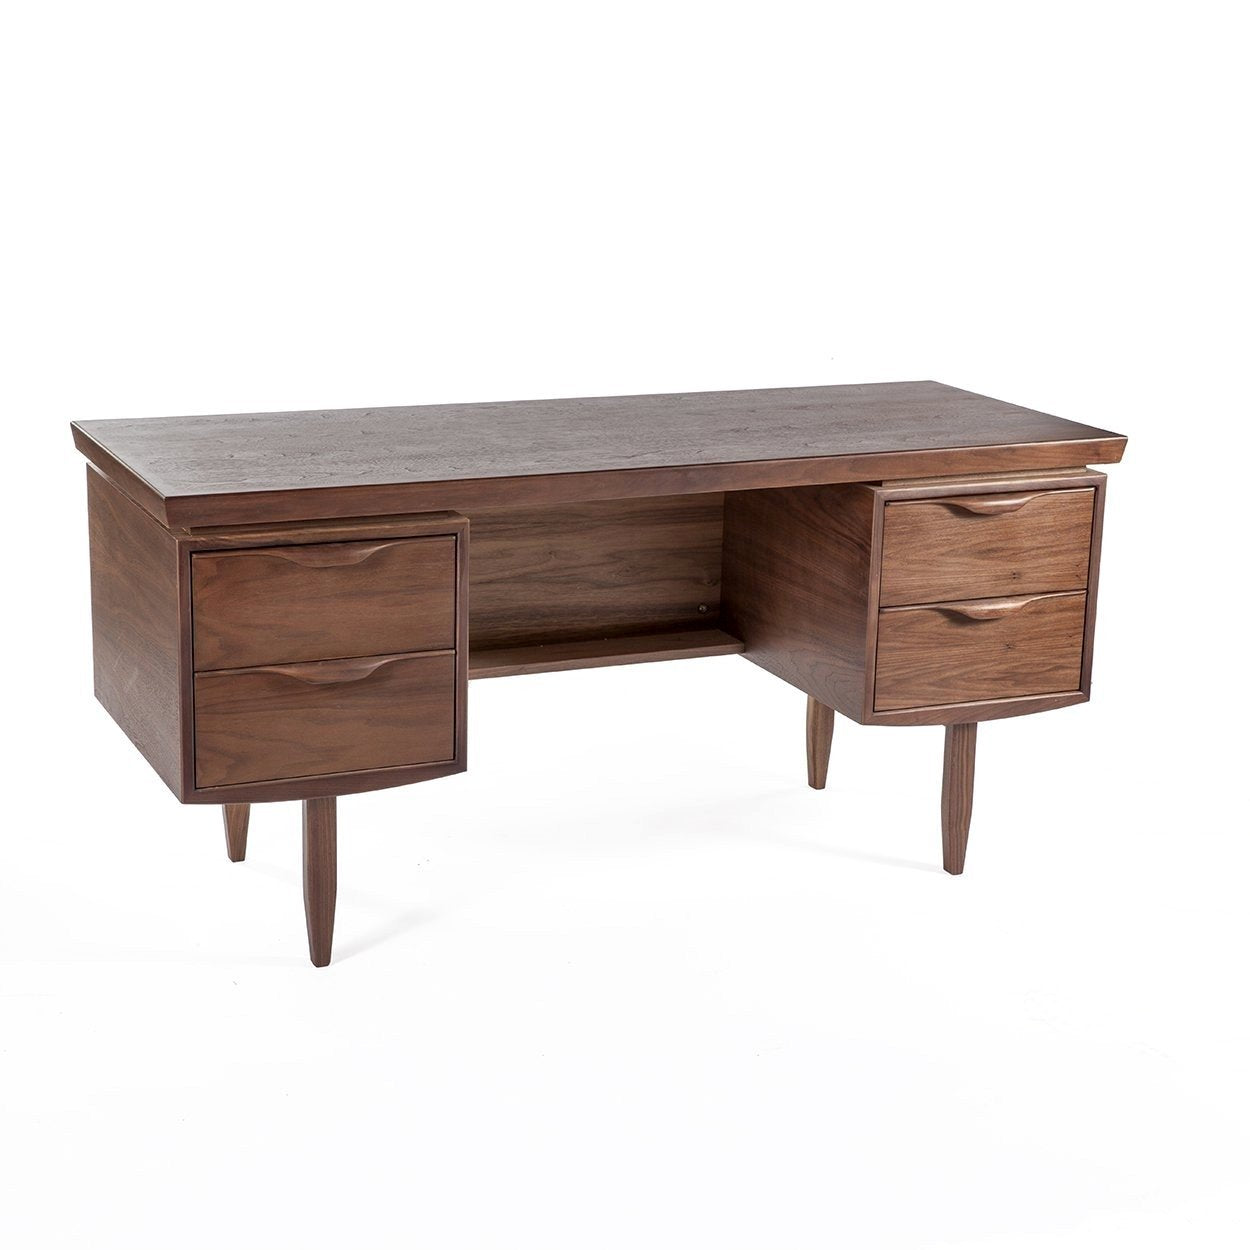 [FET5479WALNUT] The Eerikki Desk